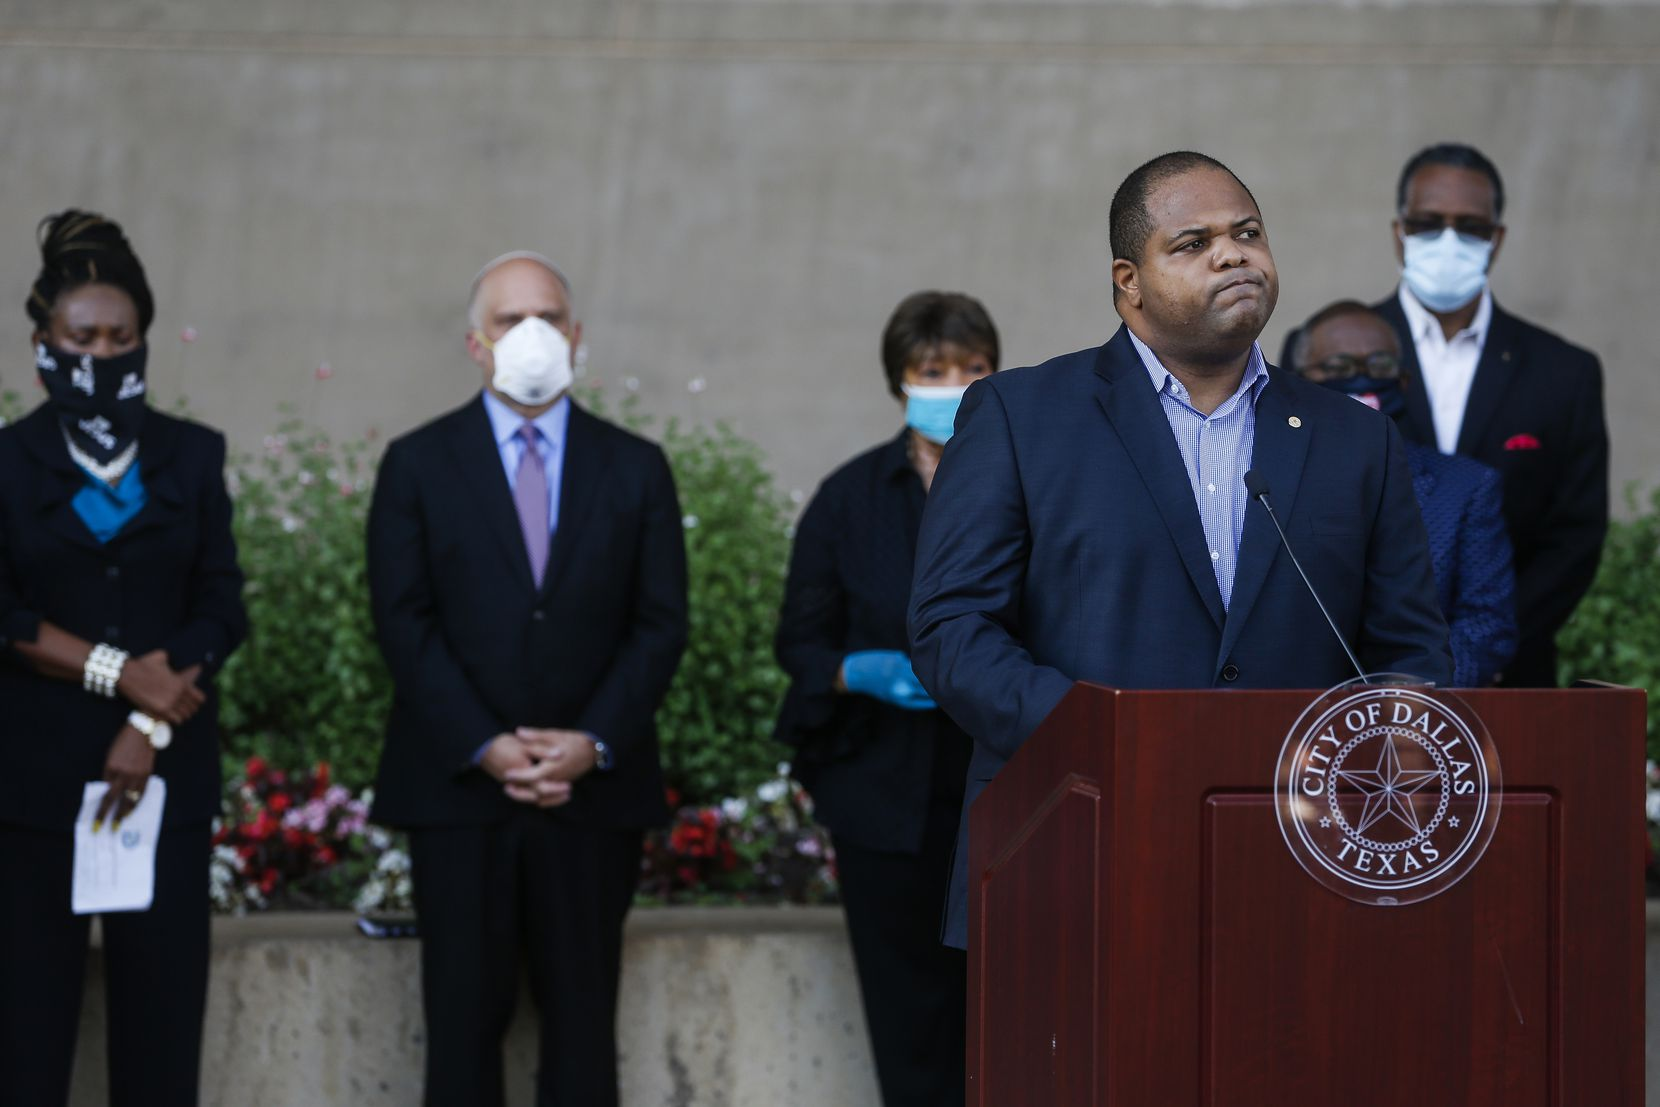 Dallas Mayor Eric Johnson speaks during a memorial service for George Floyd on June 5, 2020 at City Hall in Dallas.